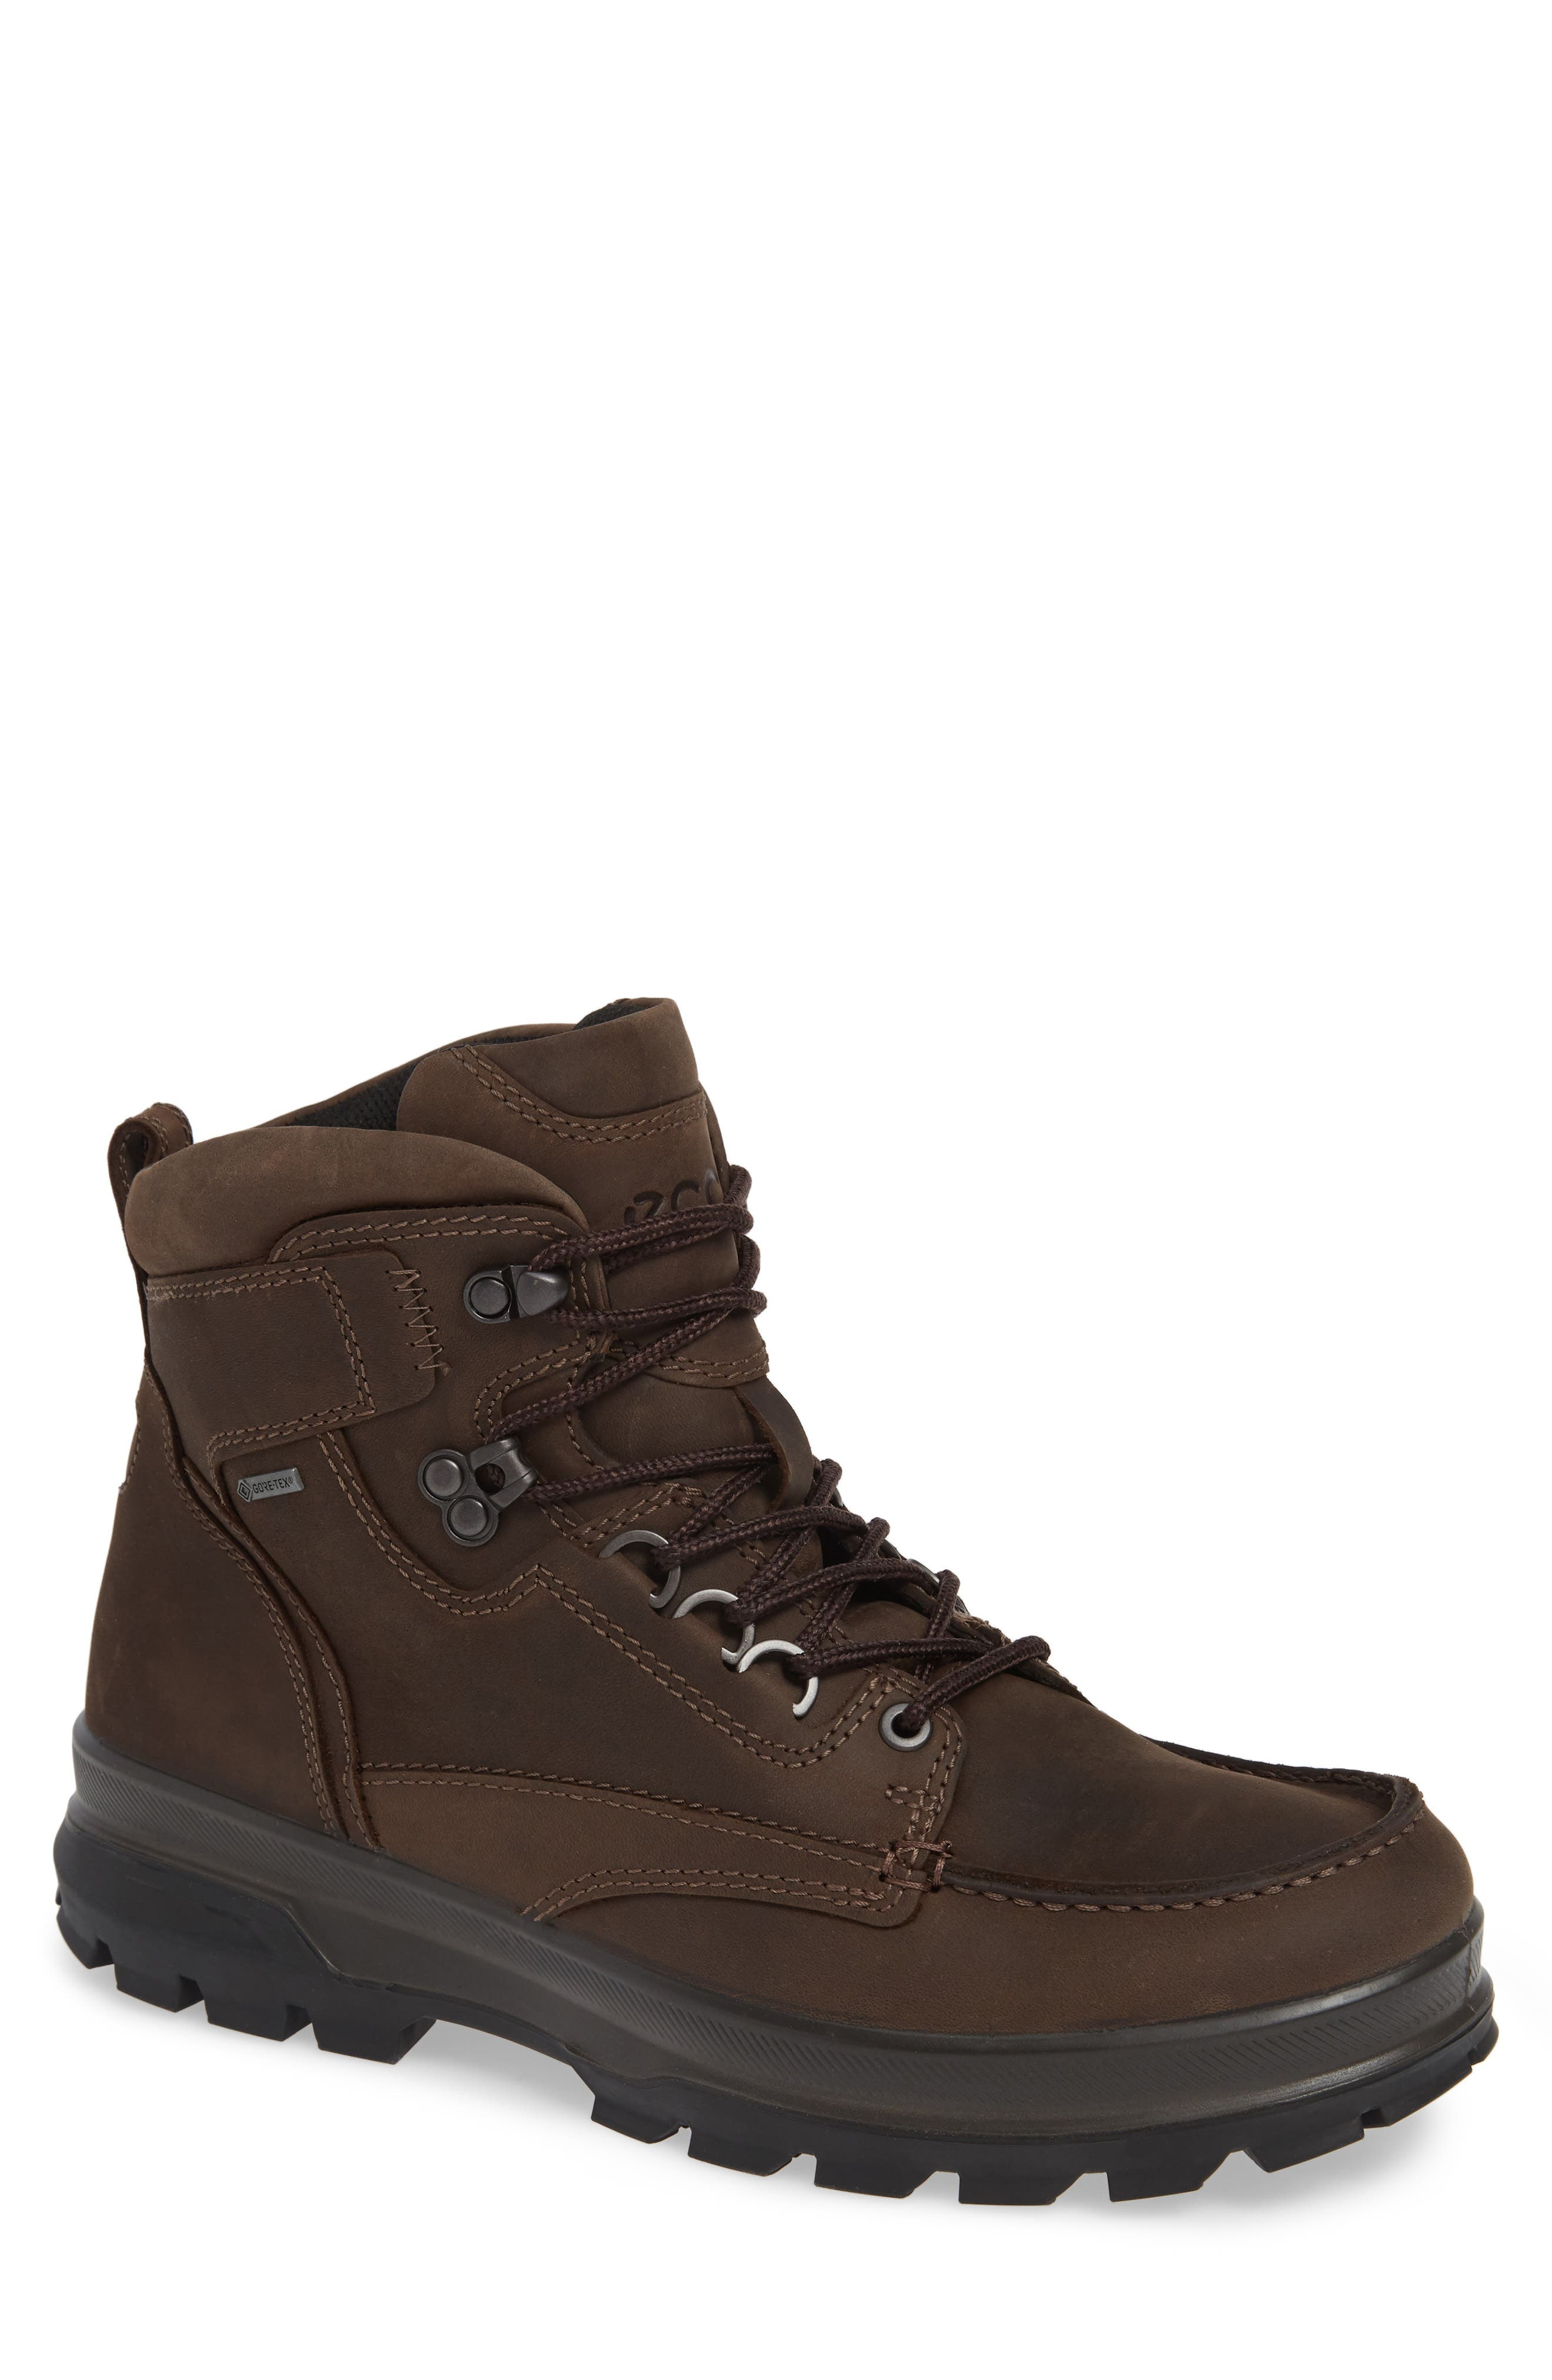 ECCO,                             Rugged Track Gore-Tex<sup>®</sup> Waterproof Boot,                             Main thumbnail 1, color,                             217